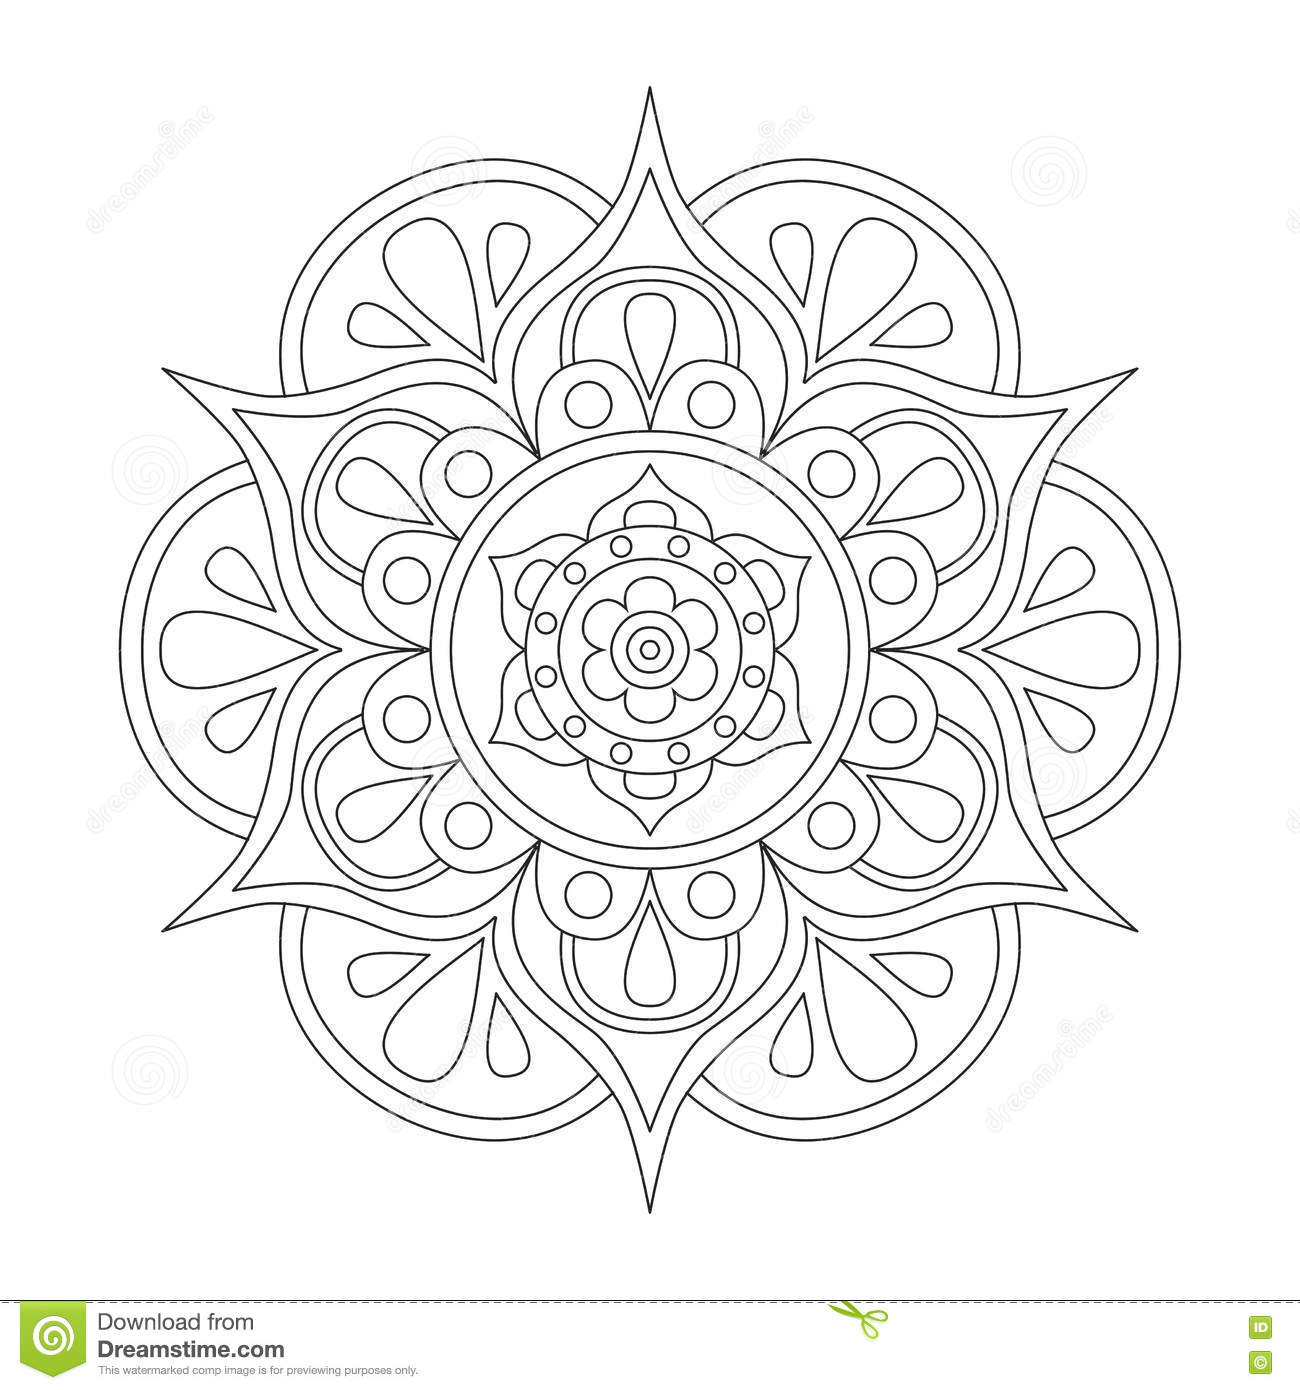 Intricate Mandala Coloring Pages Printable Intricate